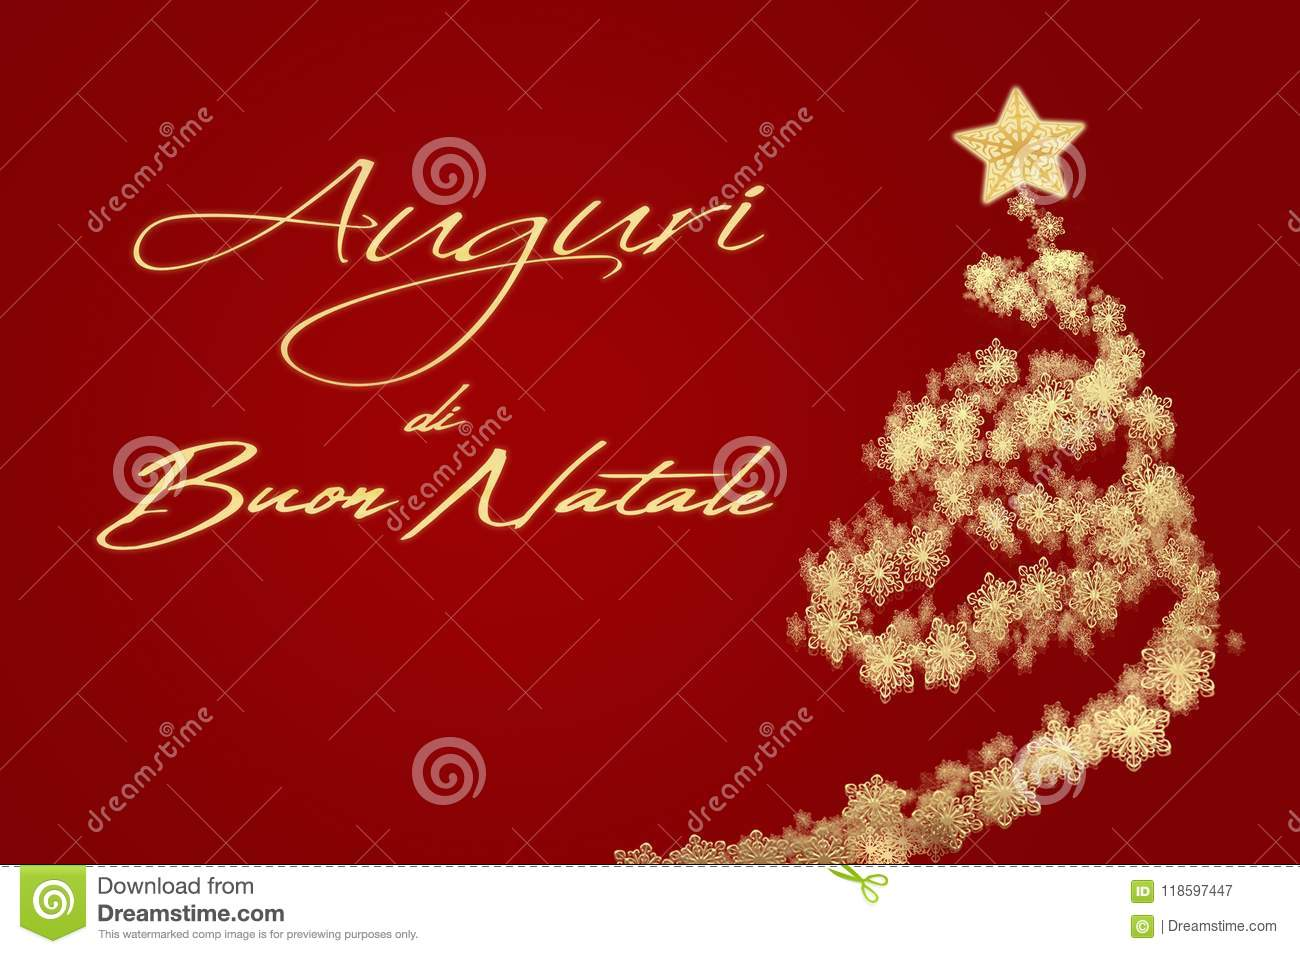 merry christmas card with greeting in italian